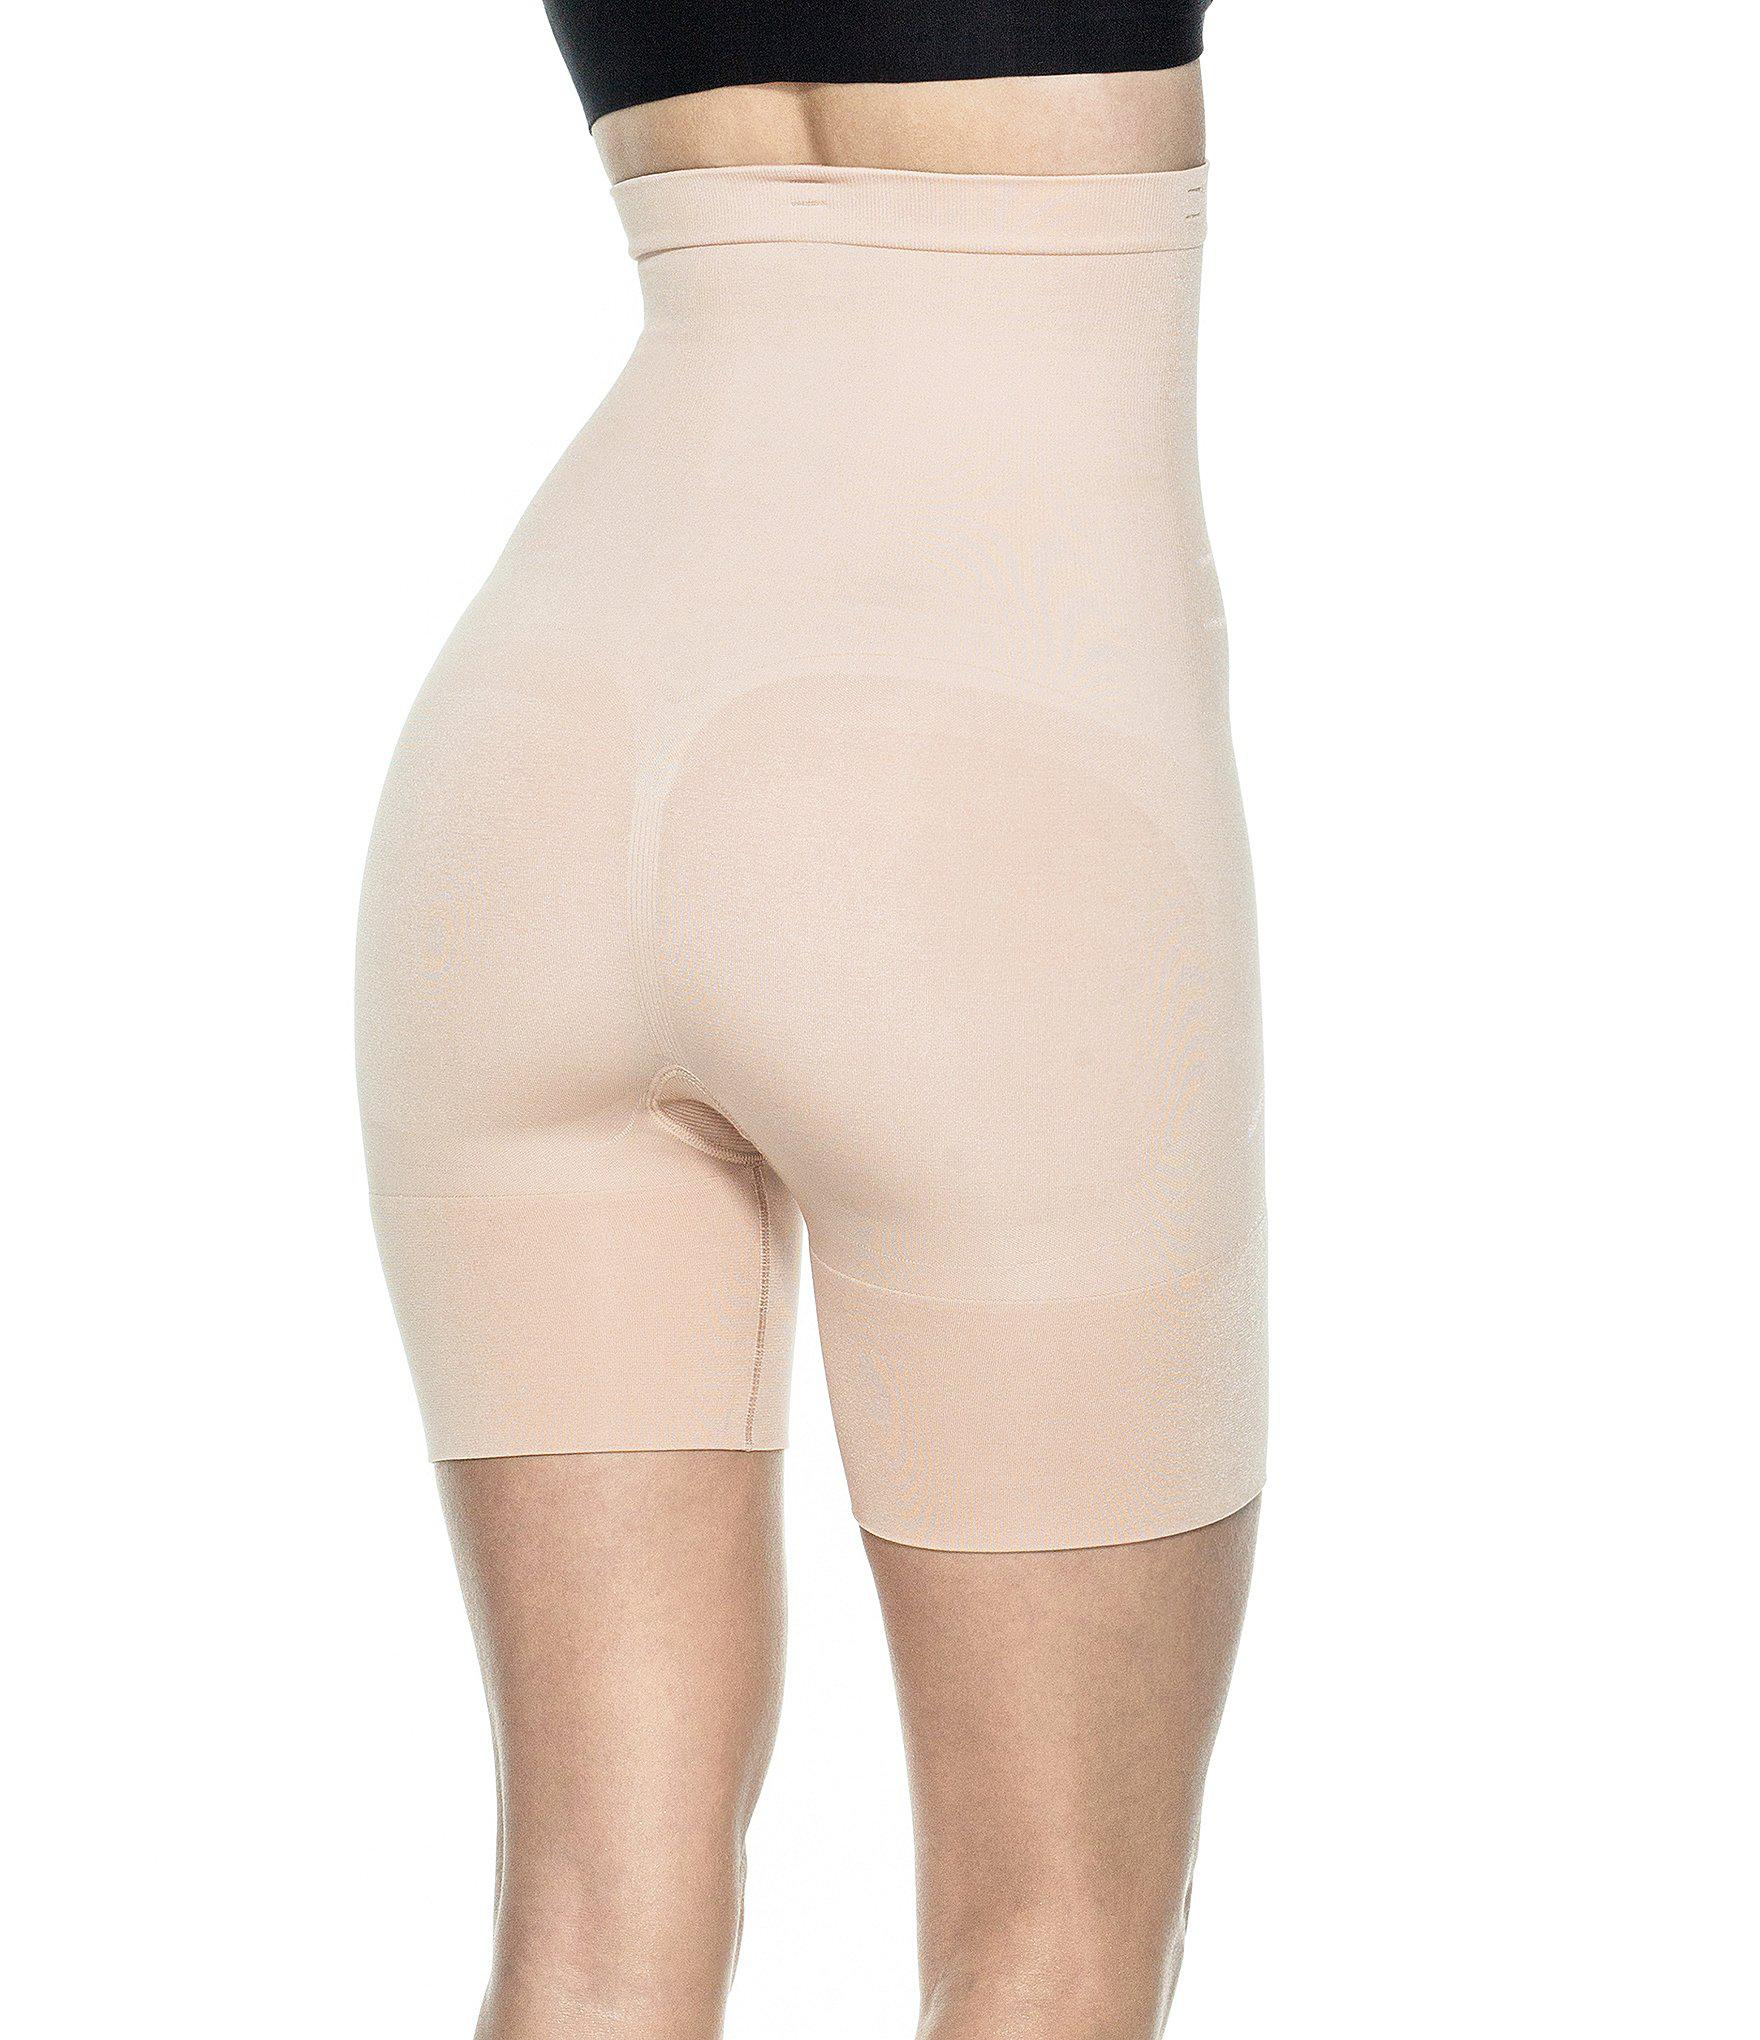 52cce0d7cf9 Spanx - Natural Plus New   Slimproved! Slim Cognito High-waisted Mid-thigh.  View fullscreen